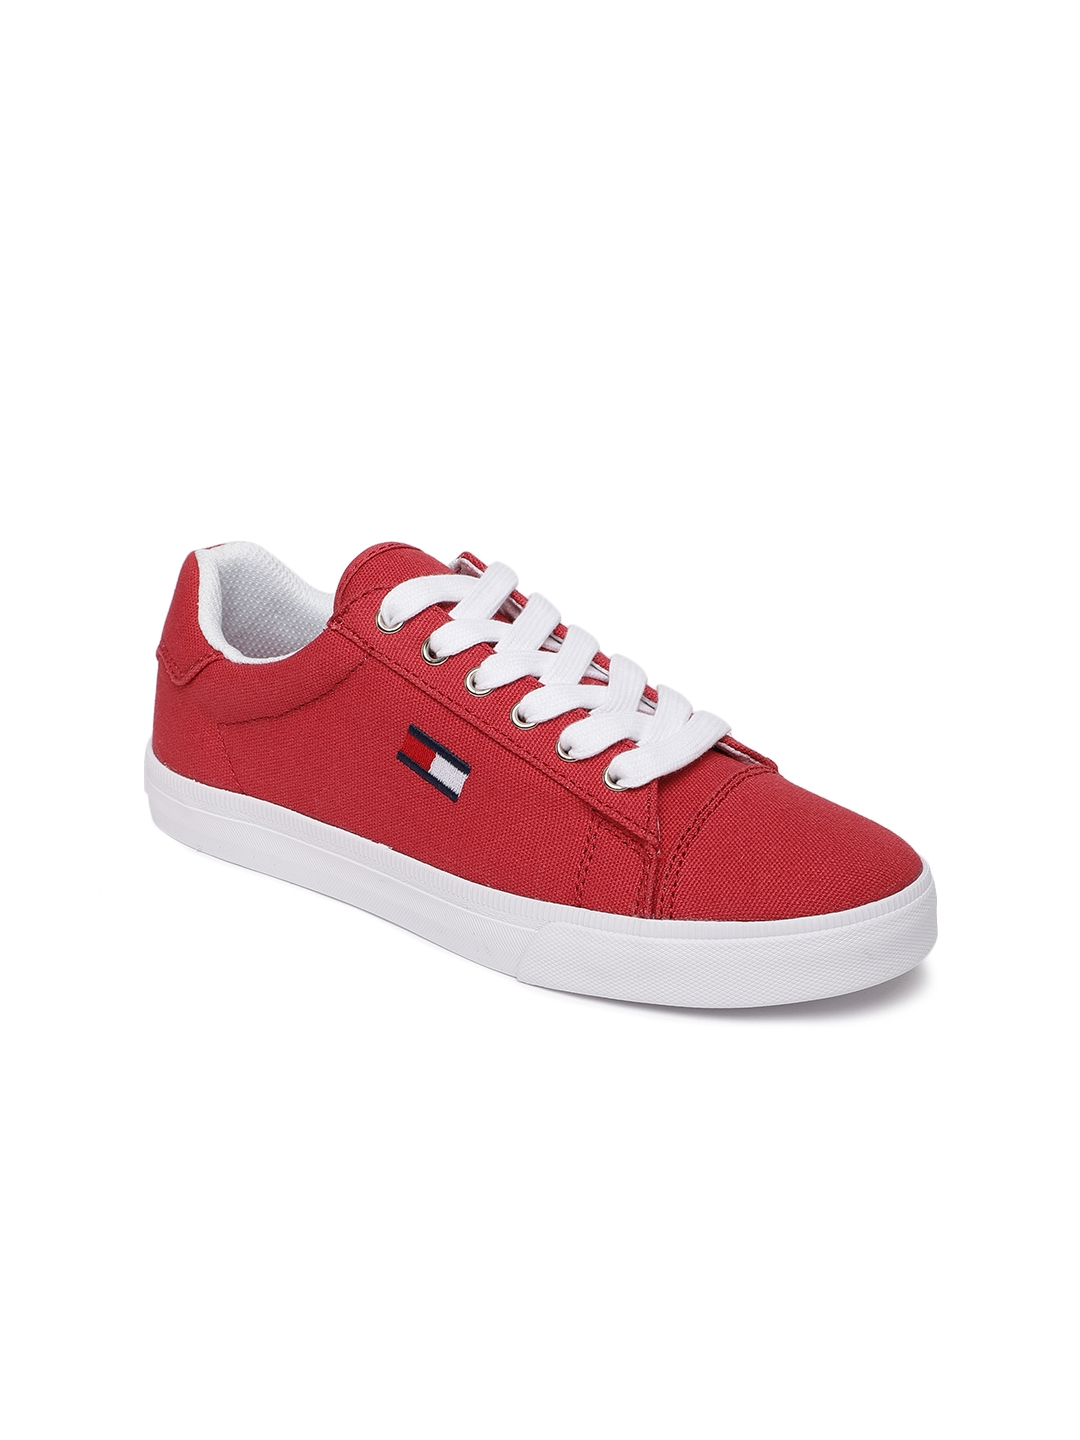 b6fa2cc2f81513 Buy Tommy Hilfiger Women Red Lava A Sneakers - Casual Shoes for ...